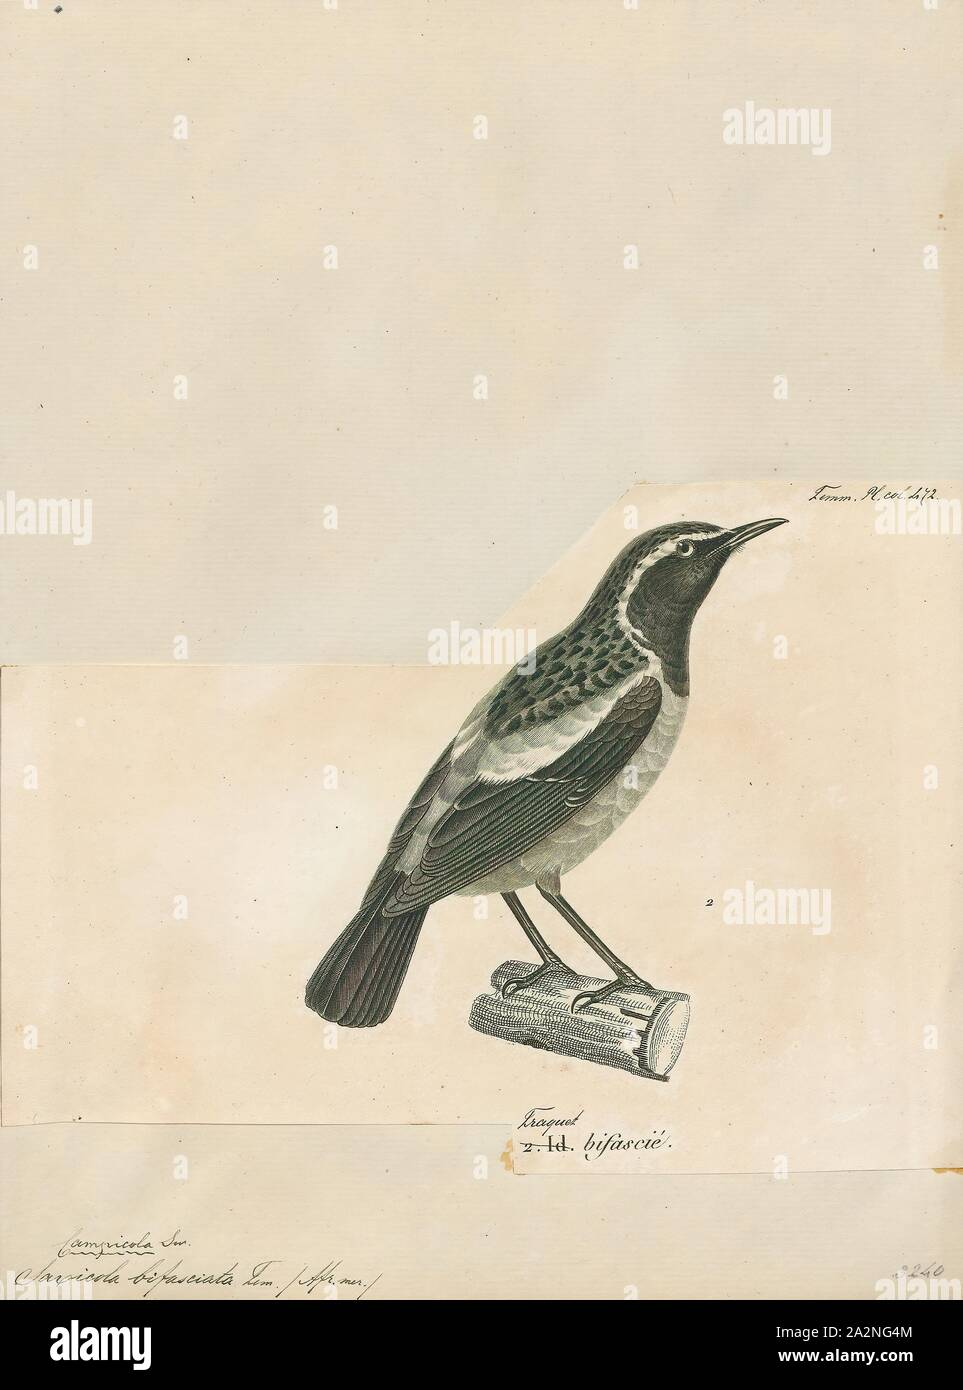 Saxicola bifasciata, Print, The buff-streaked chat or buff-streaked bushchat, (Campicoloides bifasciatus) is a species of bird in the family Muscicapidae. It is found in Lesotho, South Africa, and Swaziland. Its natural habitat is subtropical or tropical dry lowland grassland., 1700-1880 Stock Photo